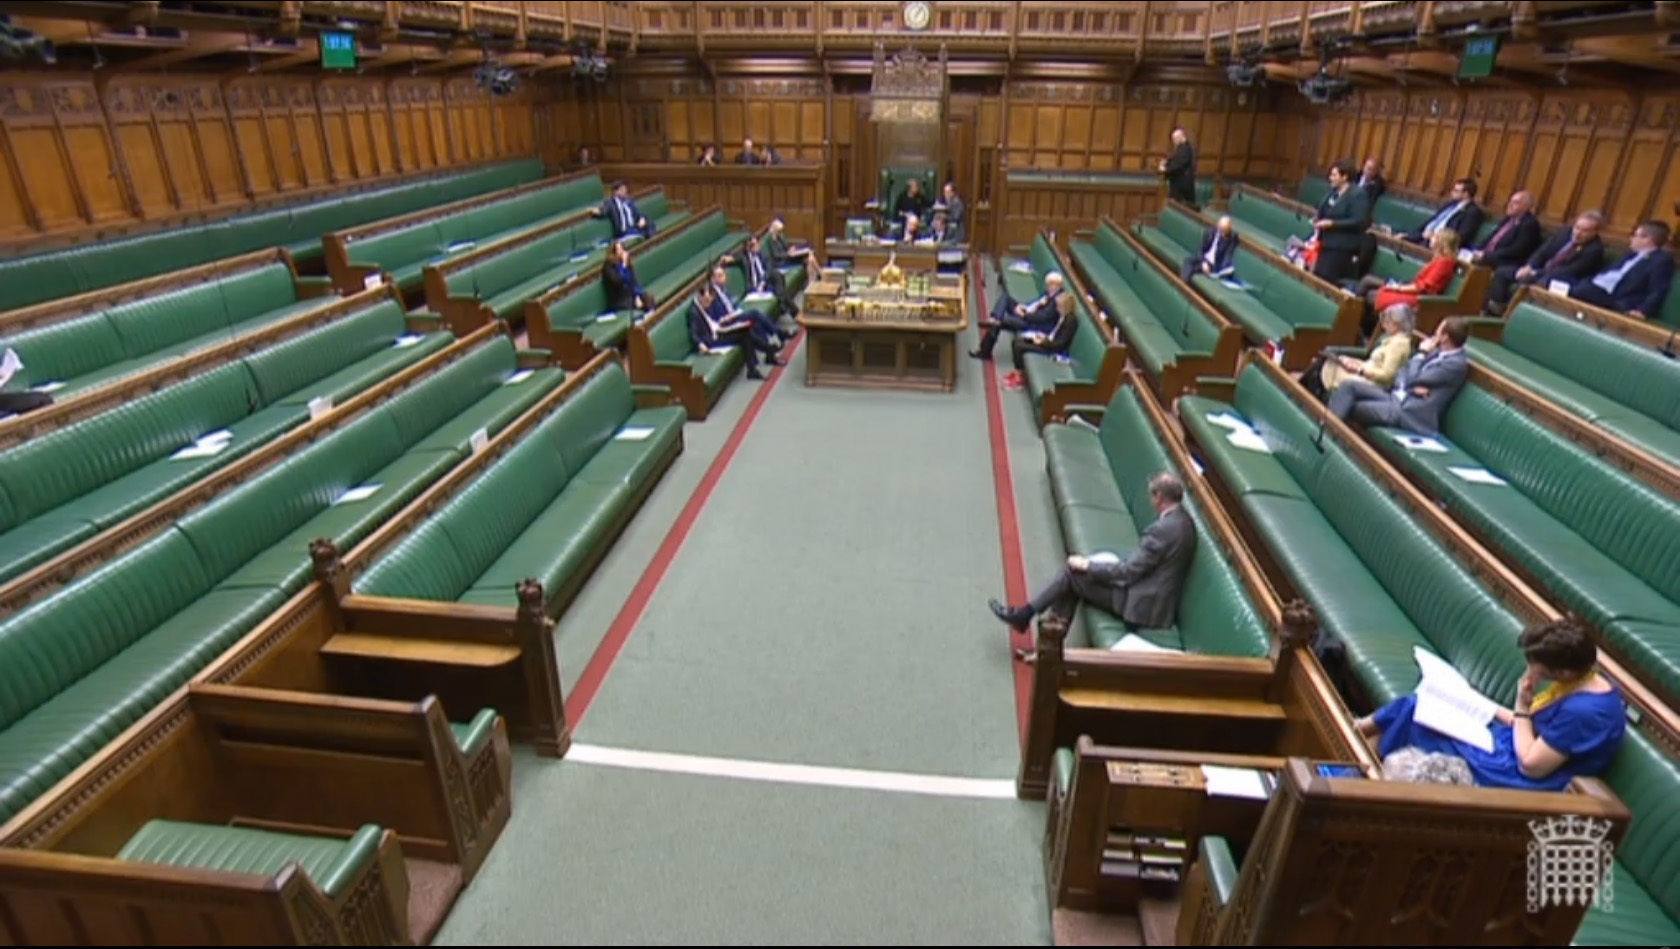 The scene in the House of Commons shortly after the announcement by the Independent Parliamentary Standards Authority that MPs' basic pay is to increase by 2.7% to £79,468 from April 1.